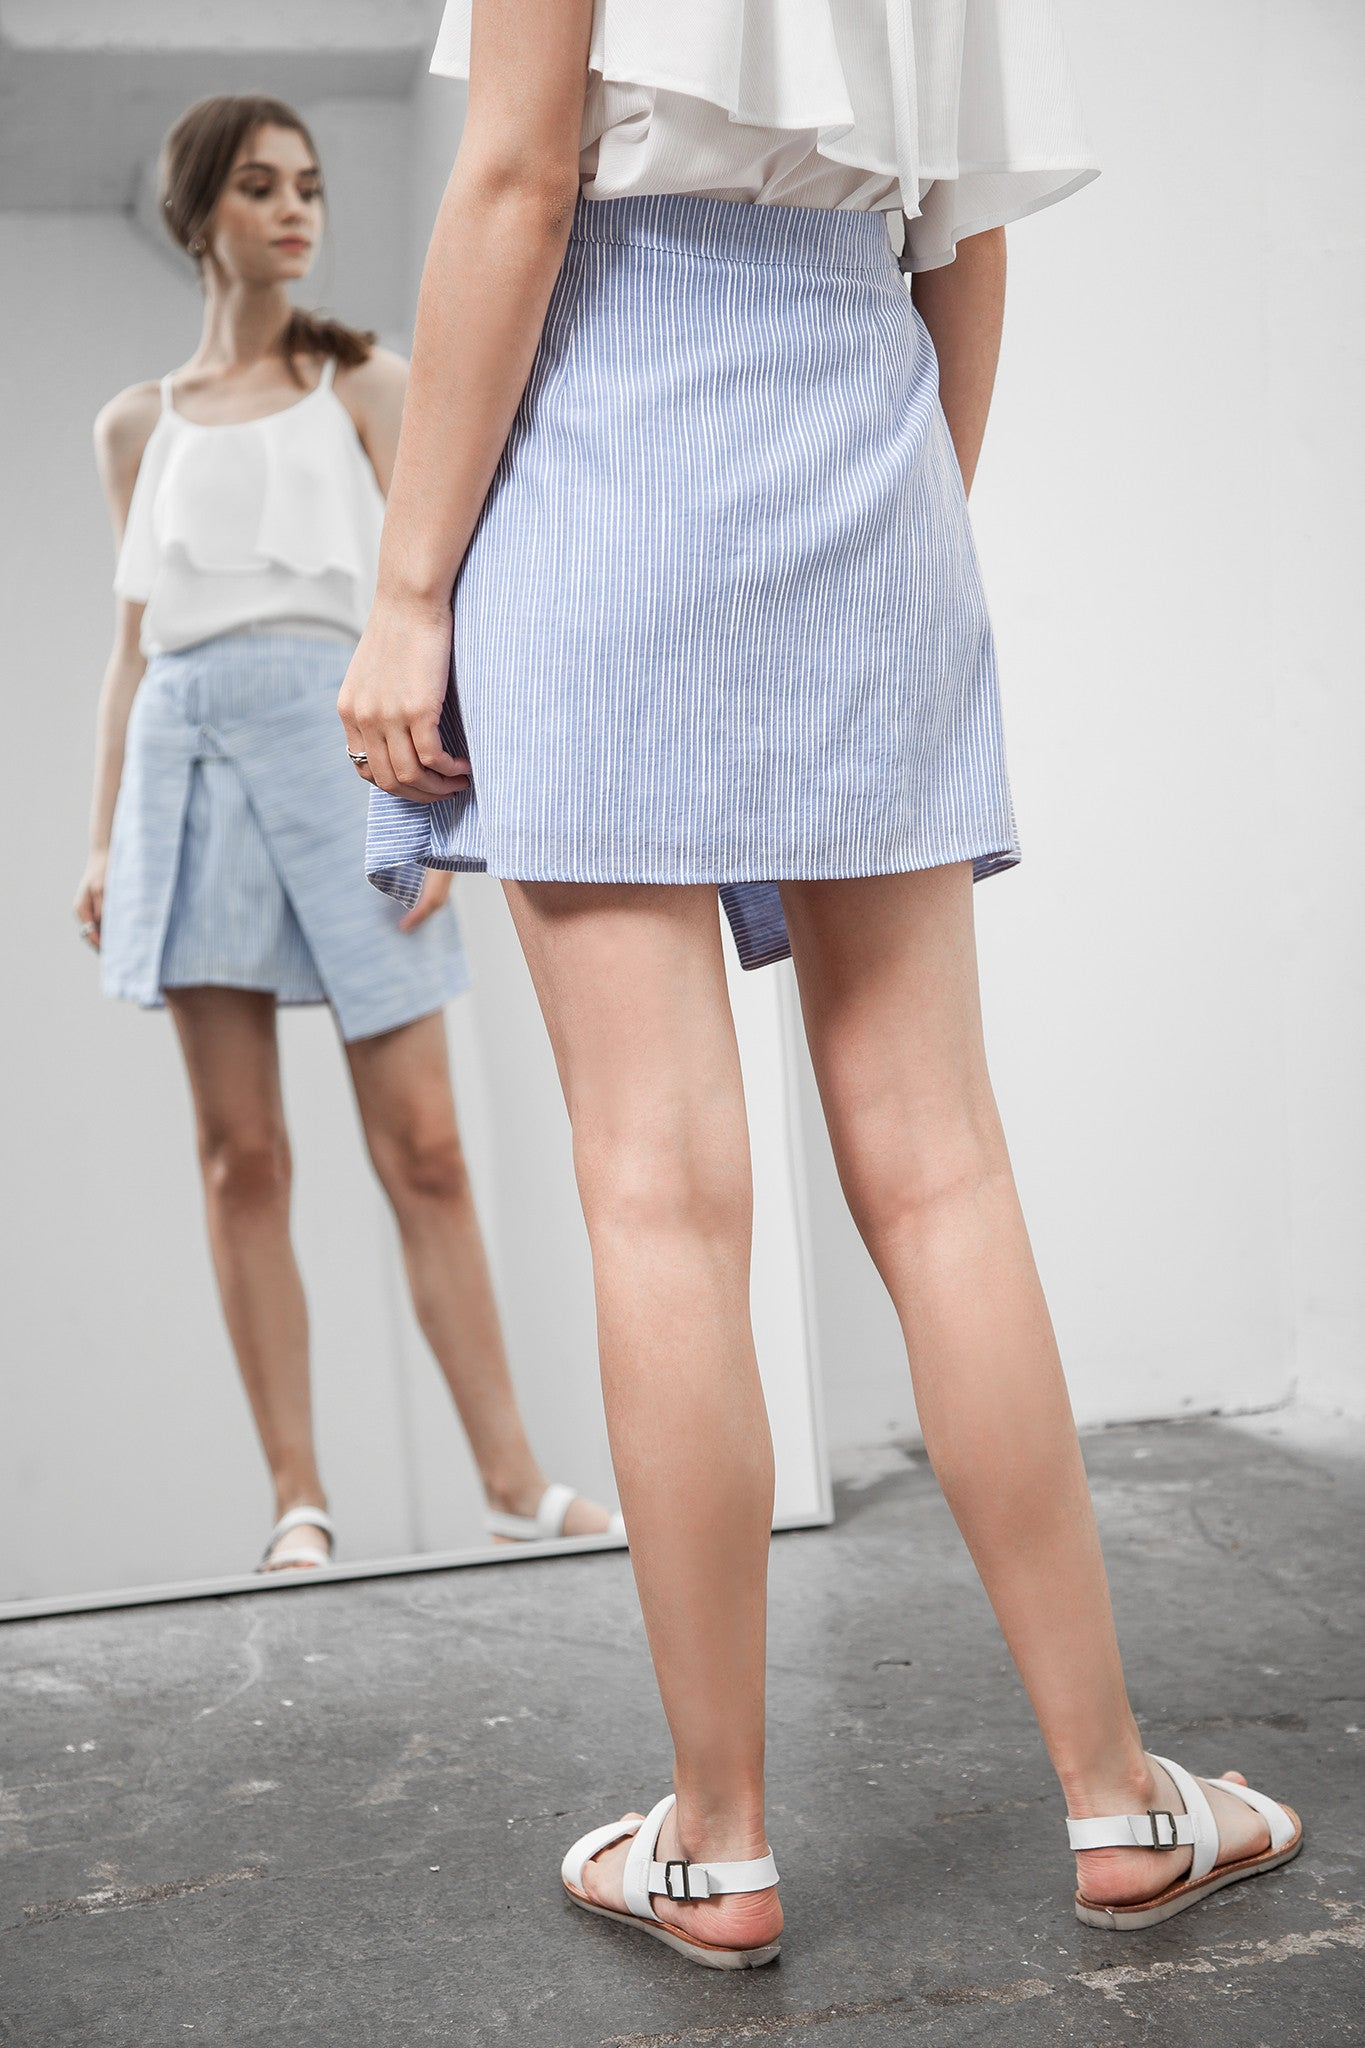 WRAP STYLE D RING SKIRT - J.O.A.